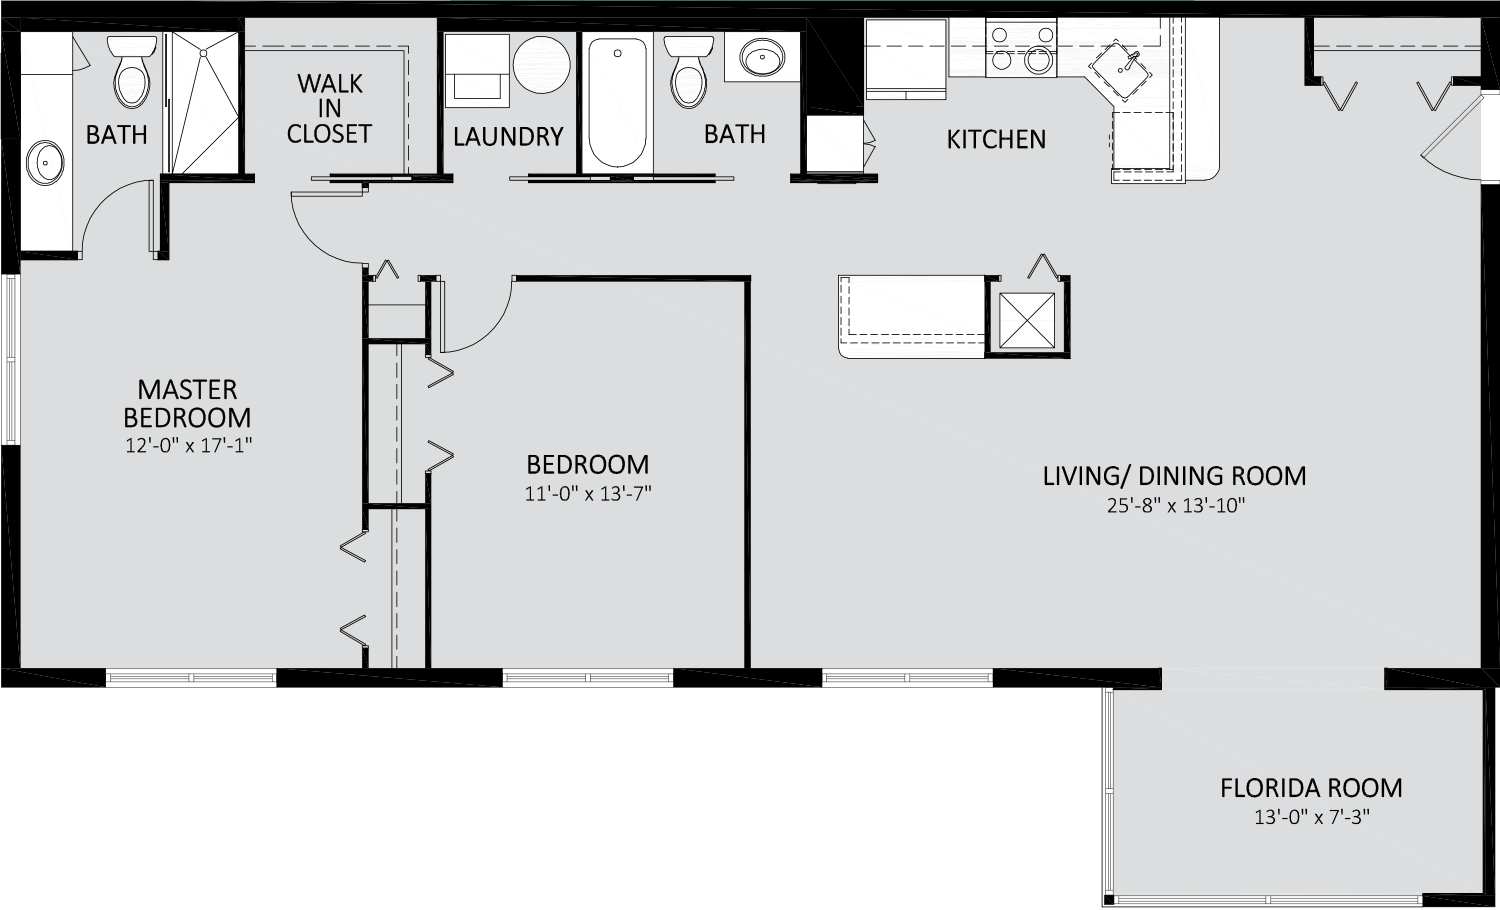 SAE Seashell Contemporary Two Bedroom-Great Room 1270 Sq Ft.png